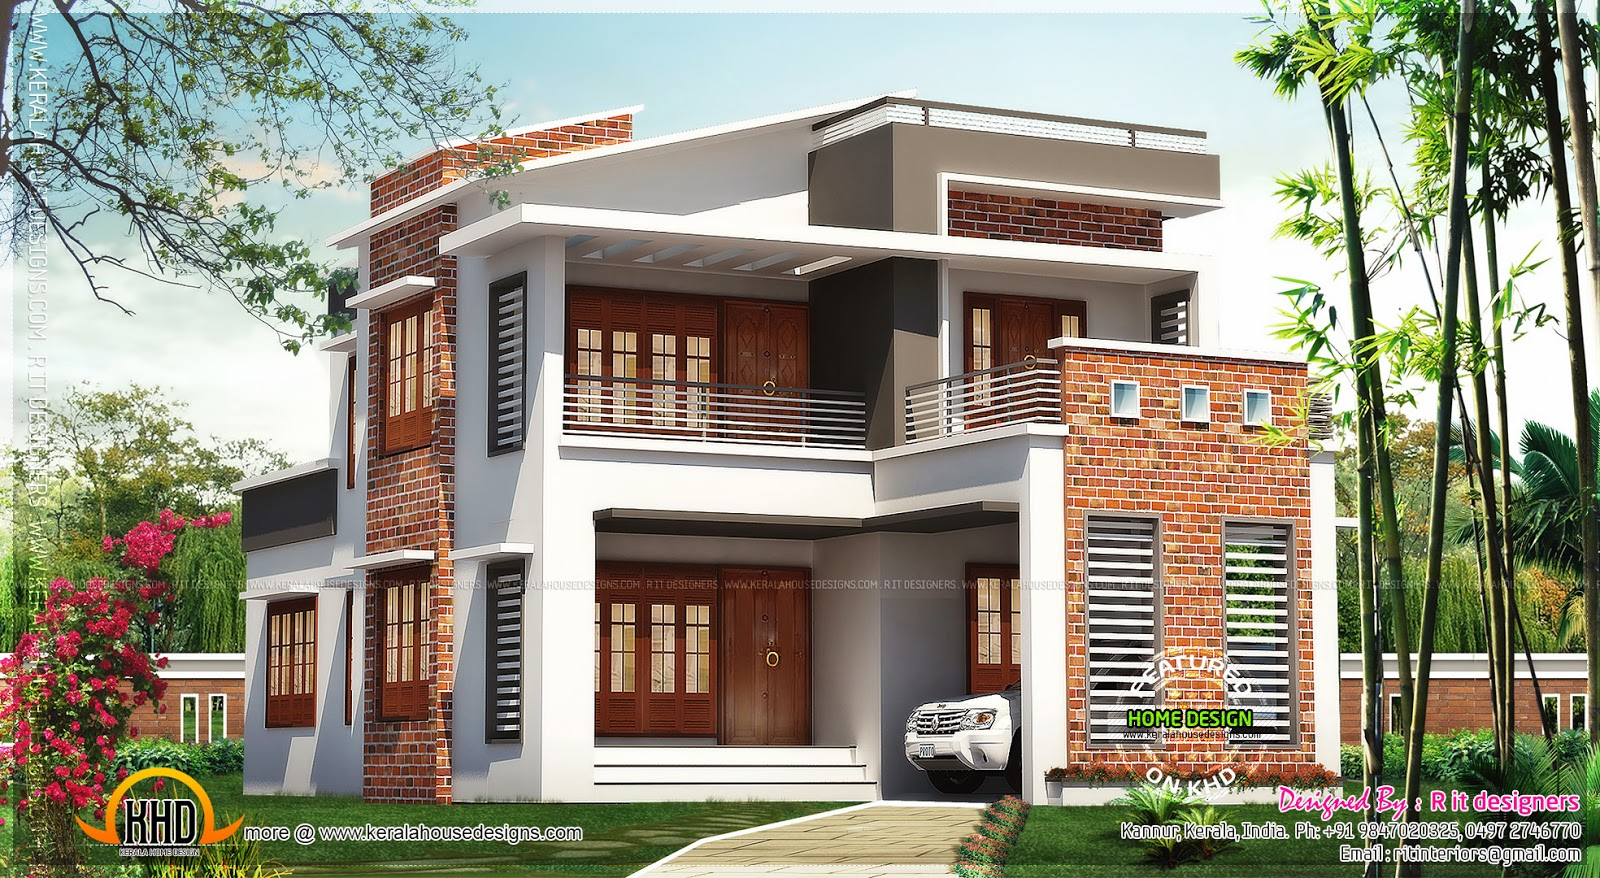 Brick mix house exterior design kerala home design and for Home outer colour design